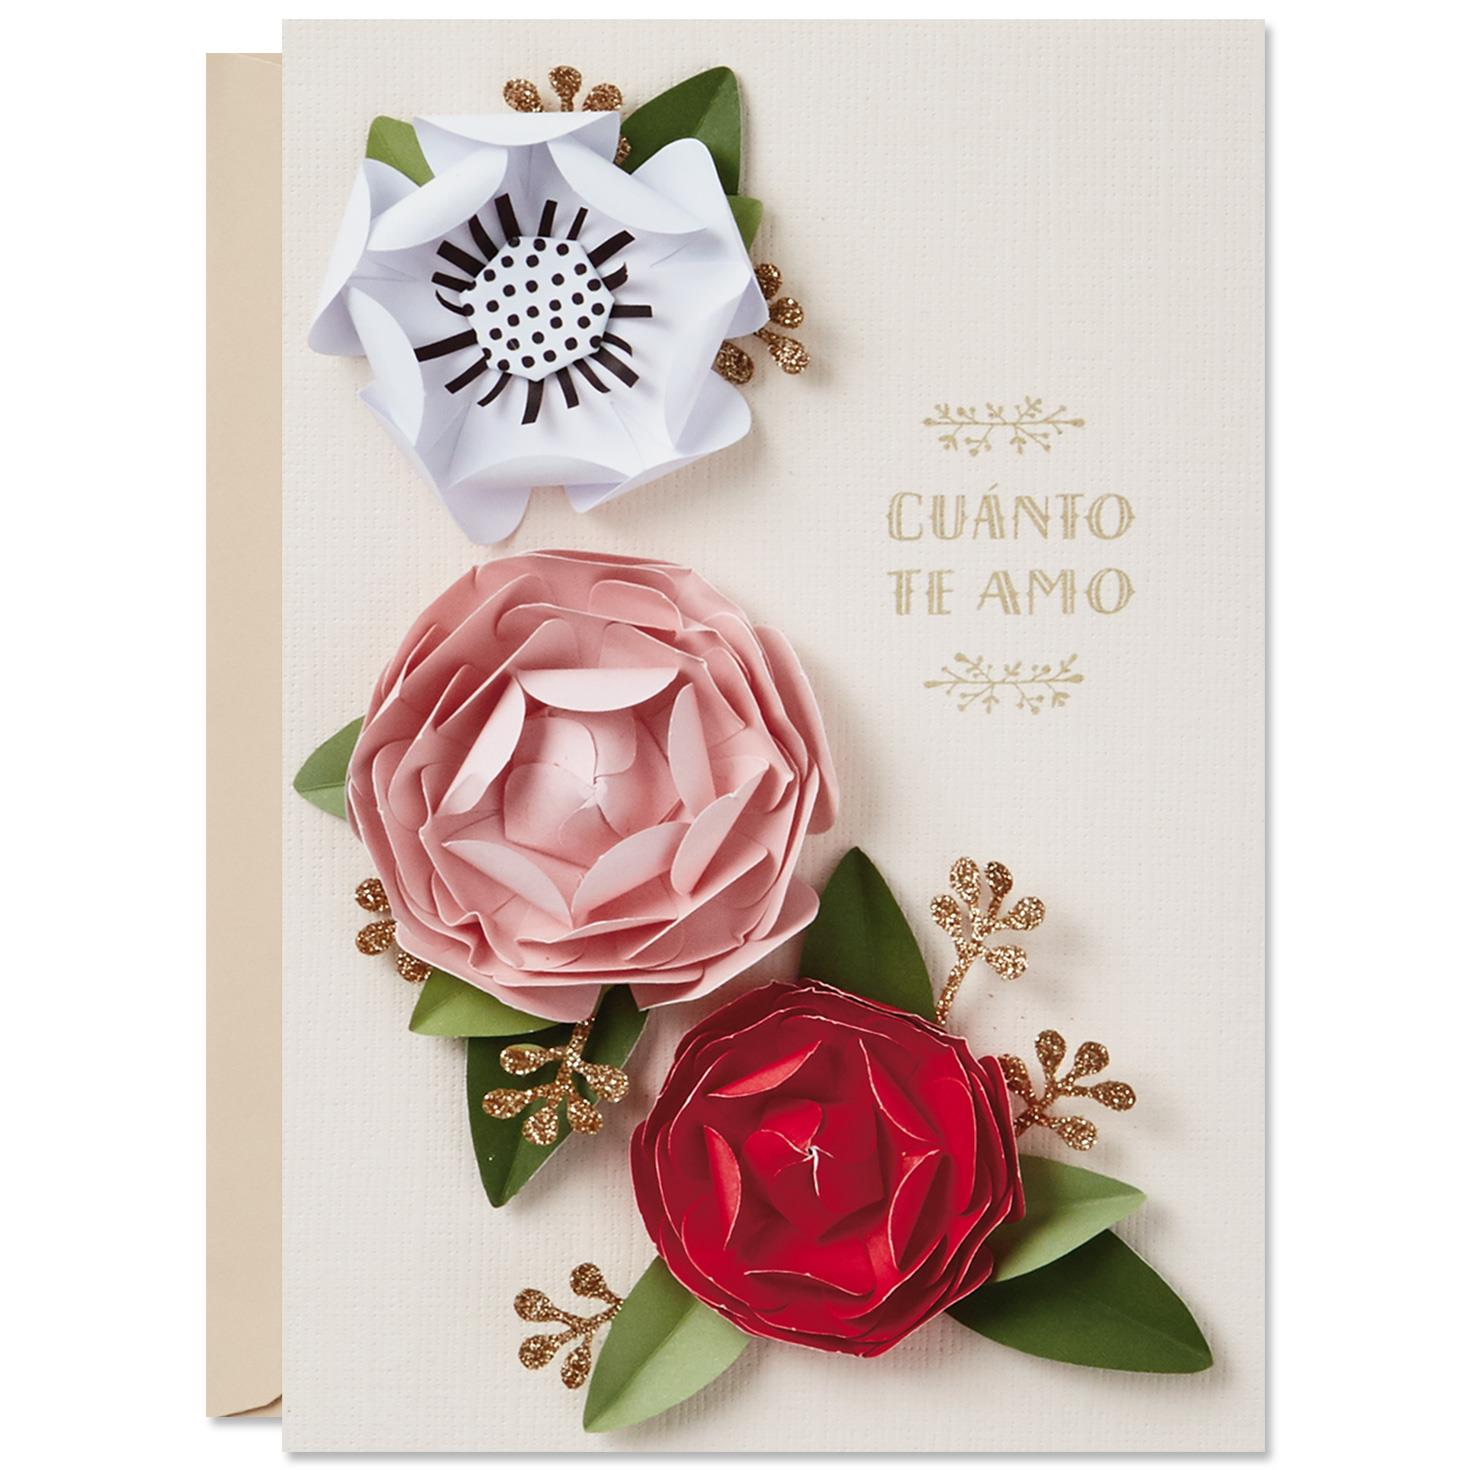 Paper flowers spanish language valentine 39 s day card Hallmark flowers